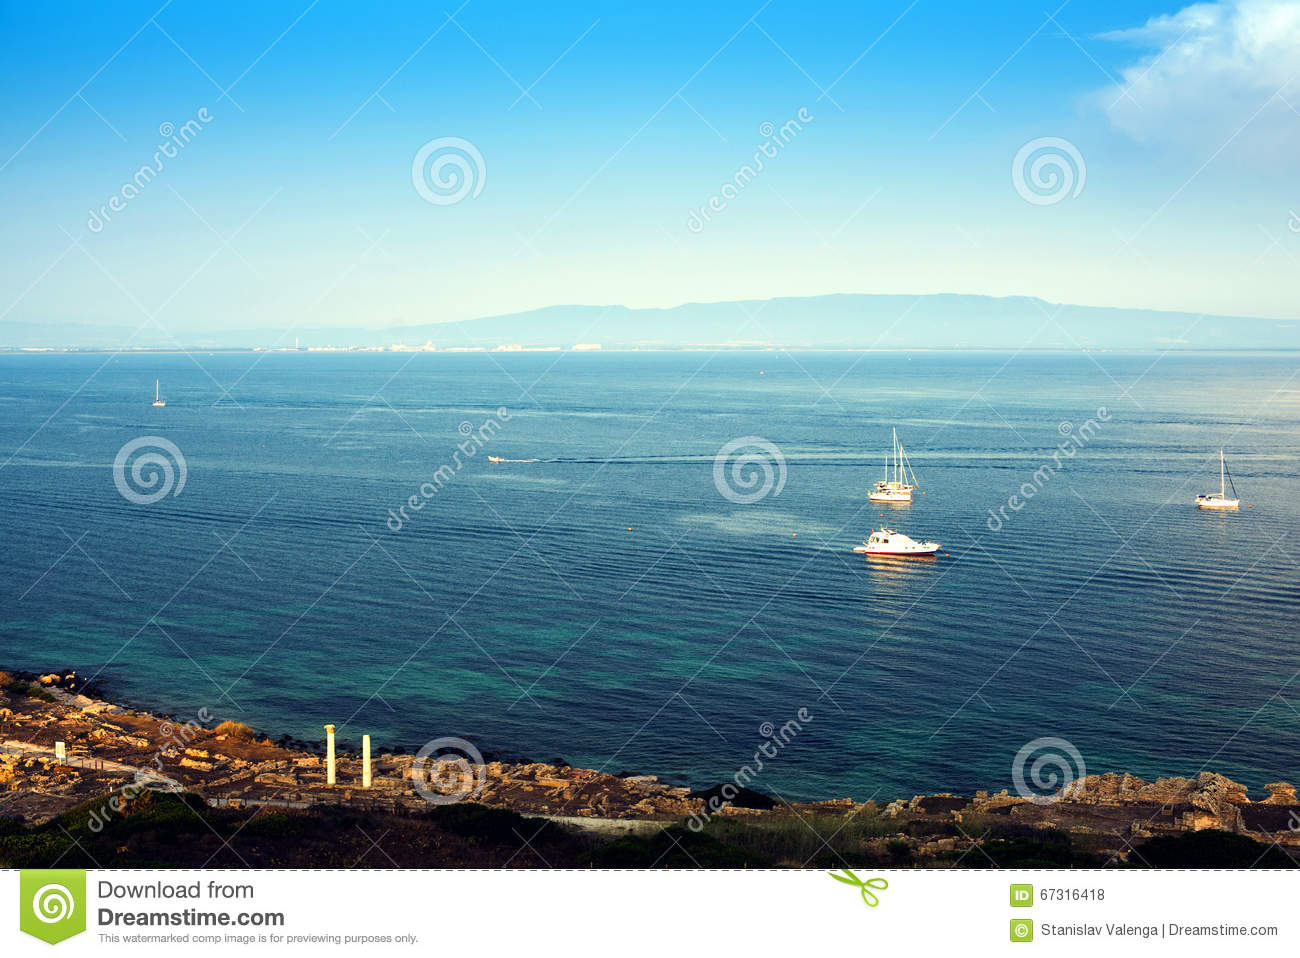 Sailing. Ship yachts with white sails in the open Sea. Luxury boats